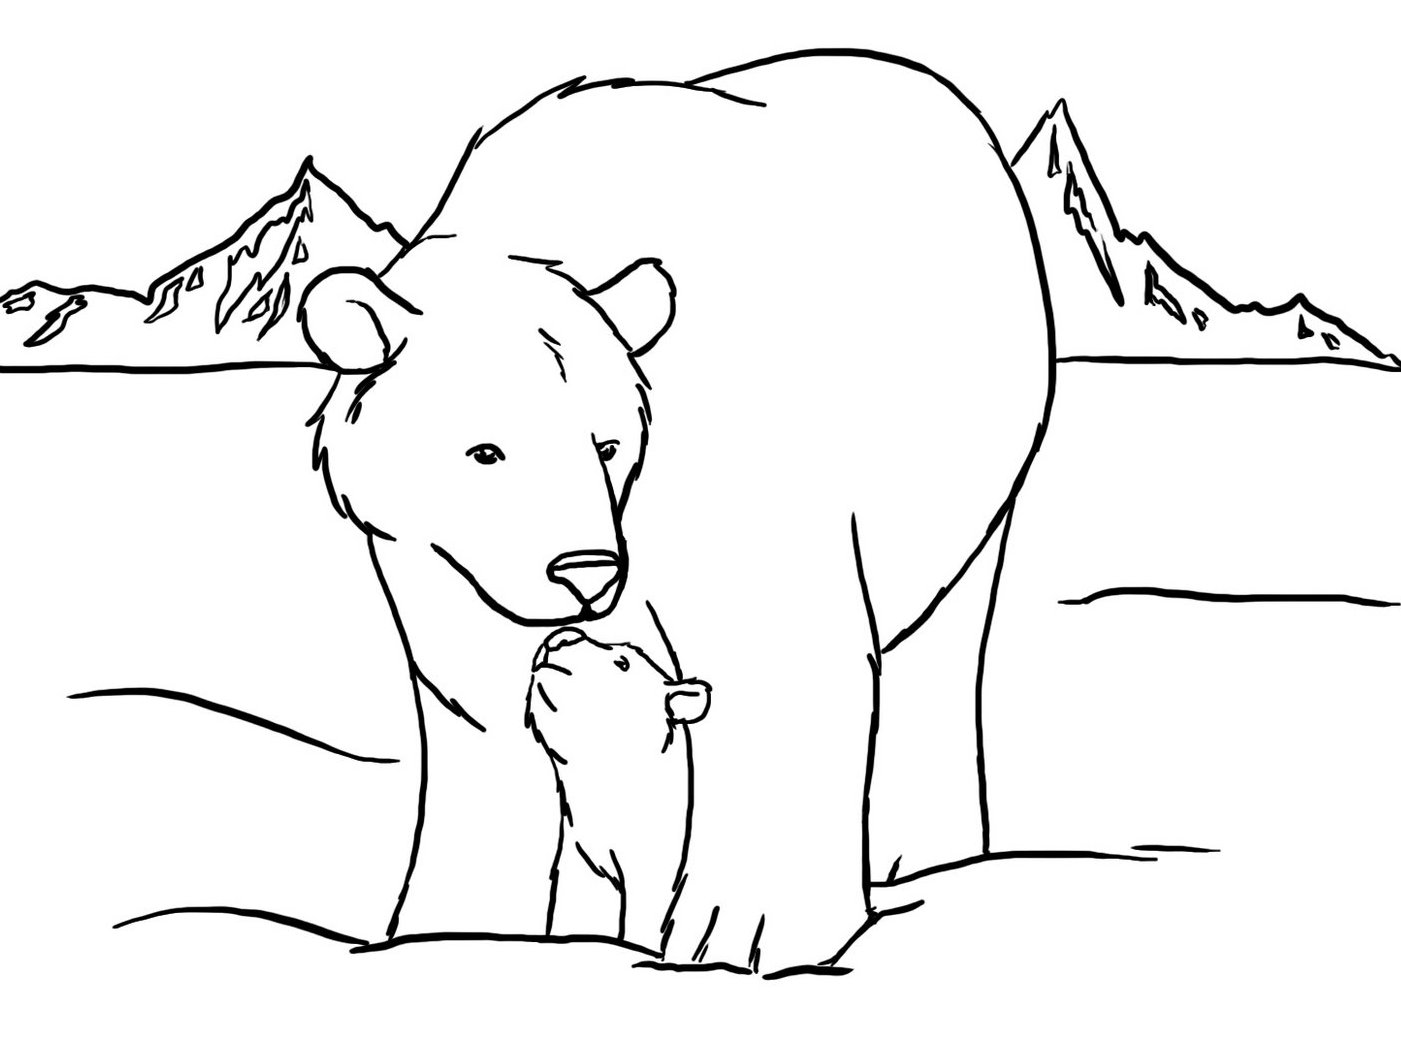 Adult Cute Coloring Pages Of Polar Bears Gallery Images best free printable polar bear coloring pages for kids the little images